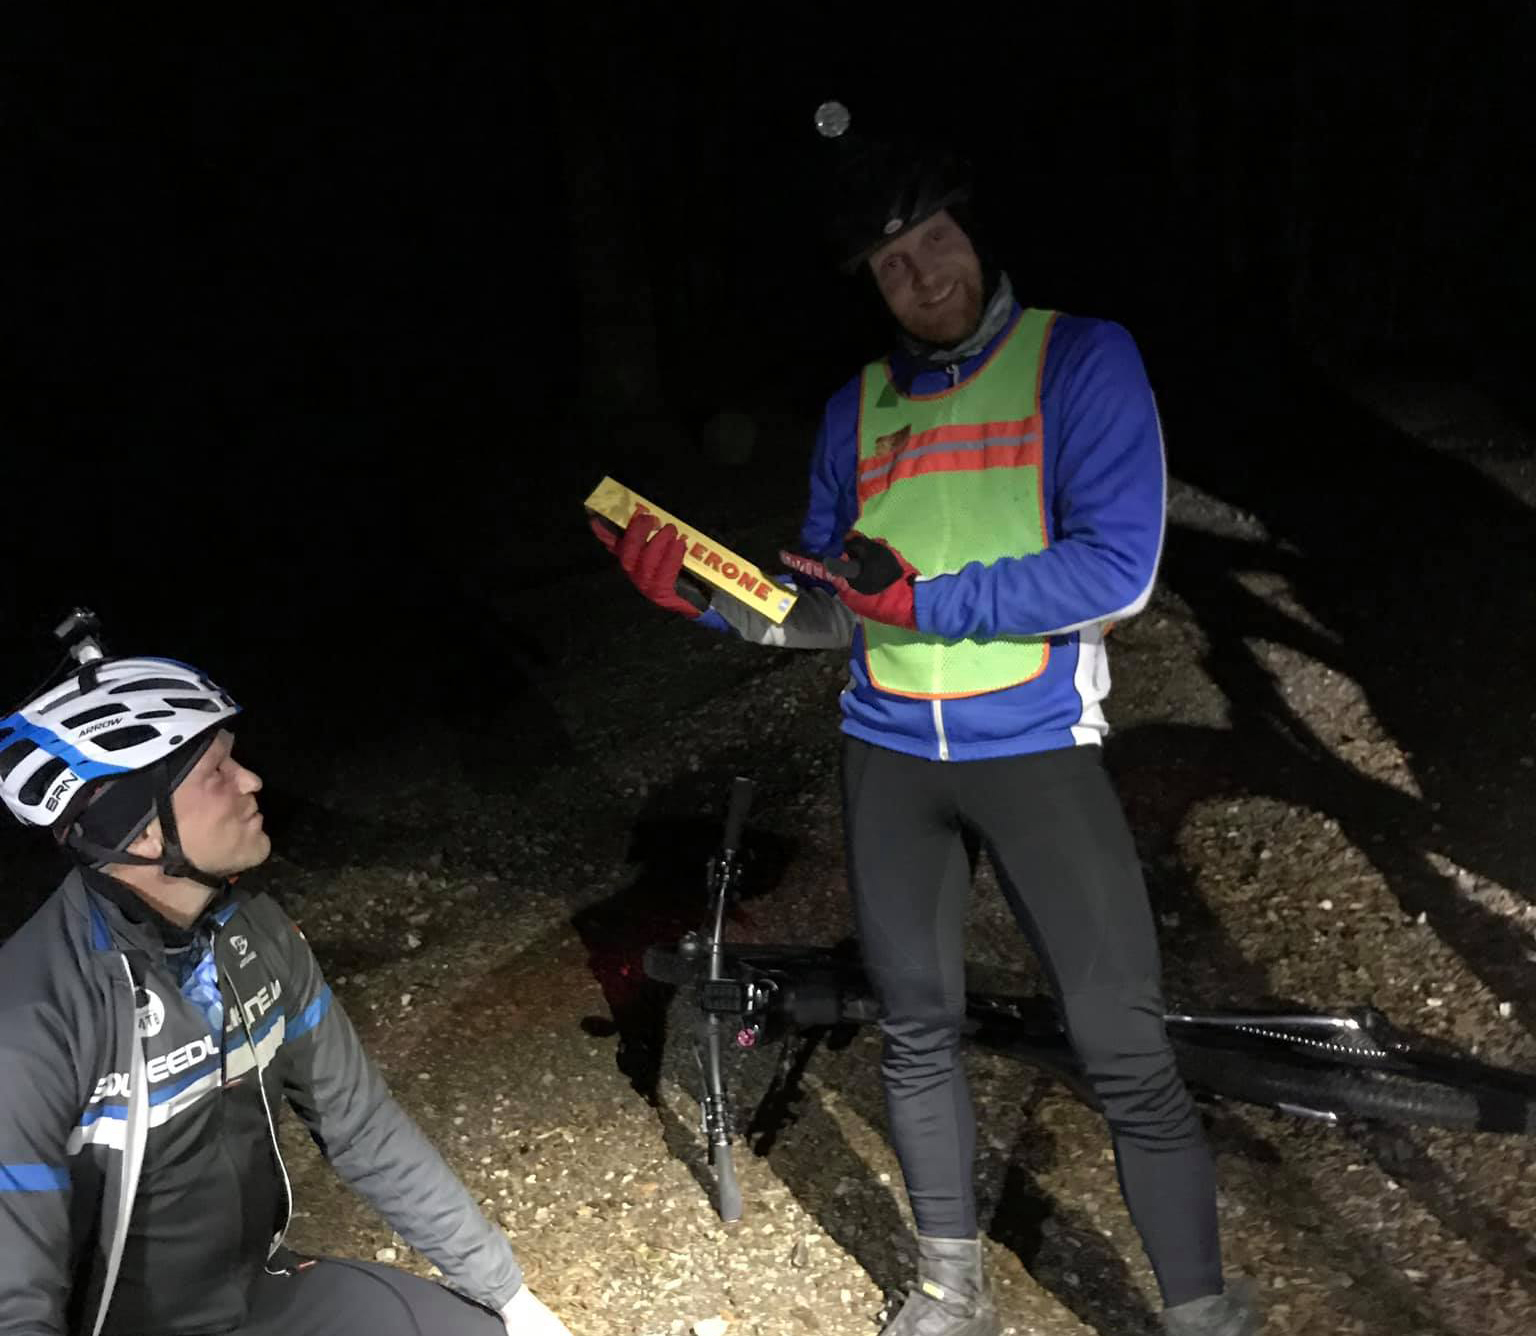 Nightrider cup - for alle i Skanderborg MTB